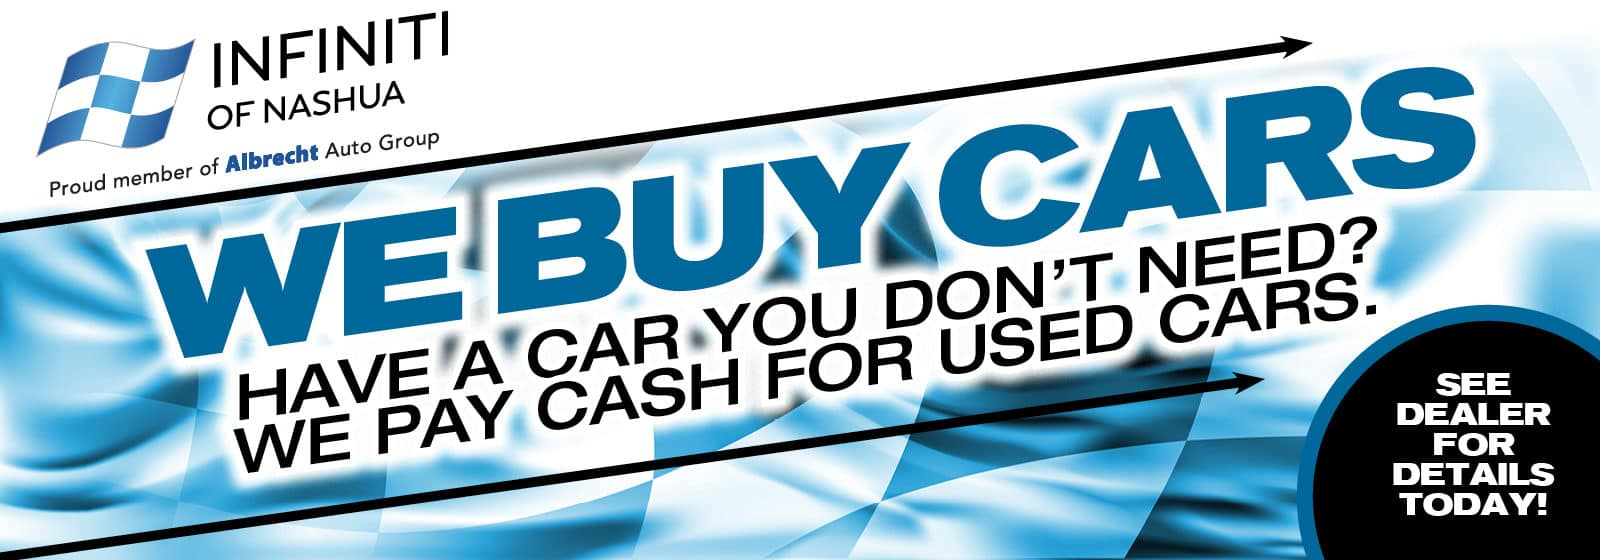 We Buy Cars! We Pay Cash For Used Cars